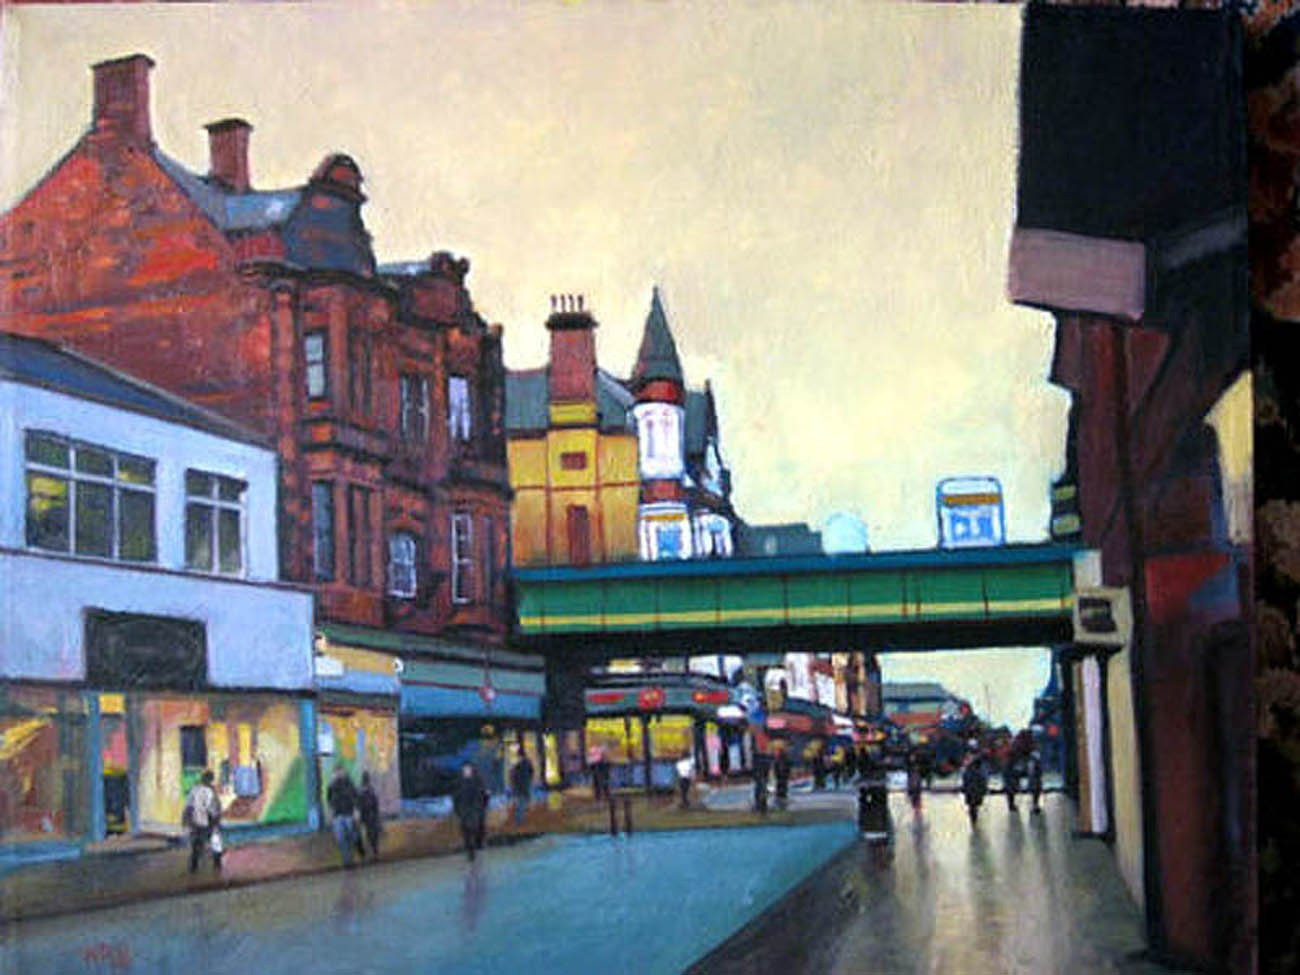 Harry Bell - King St., South Shields. Oil on canvas, 19.5 x 24 in.